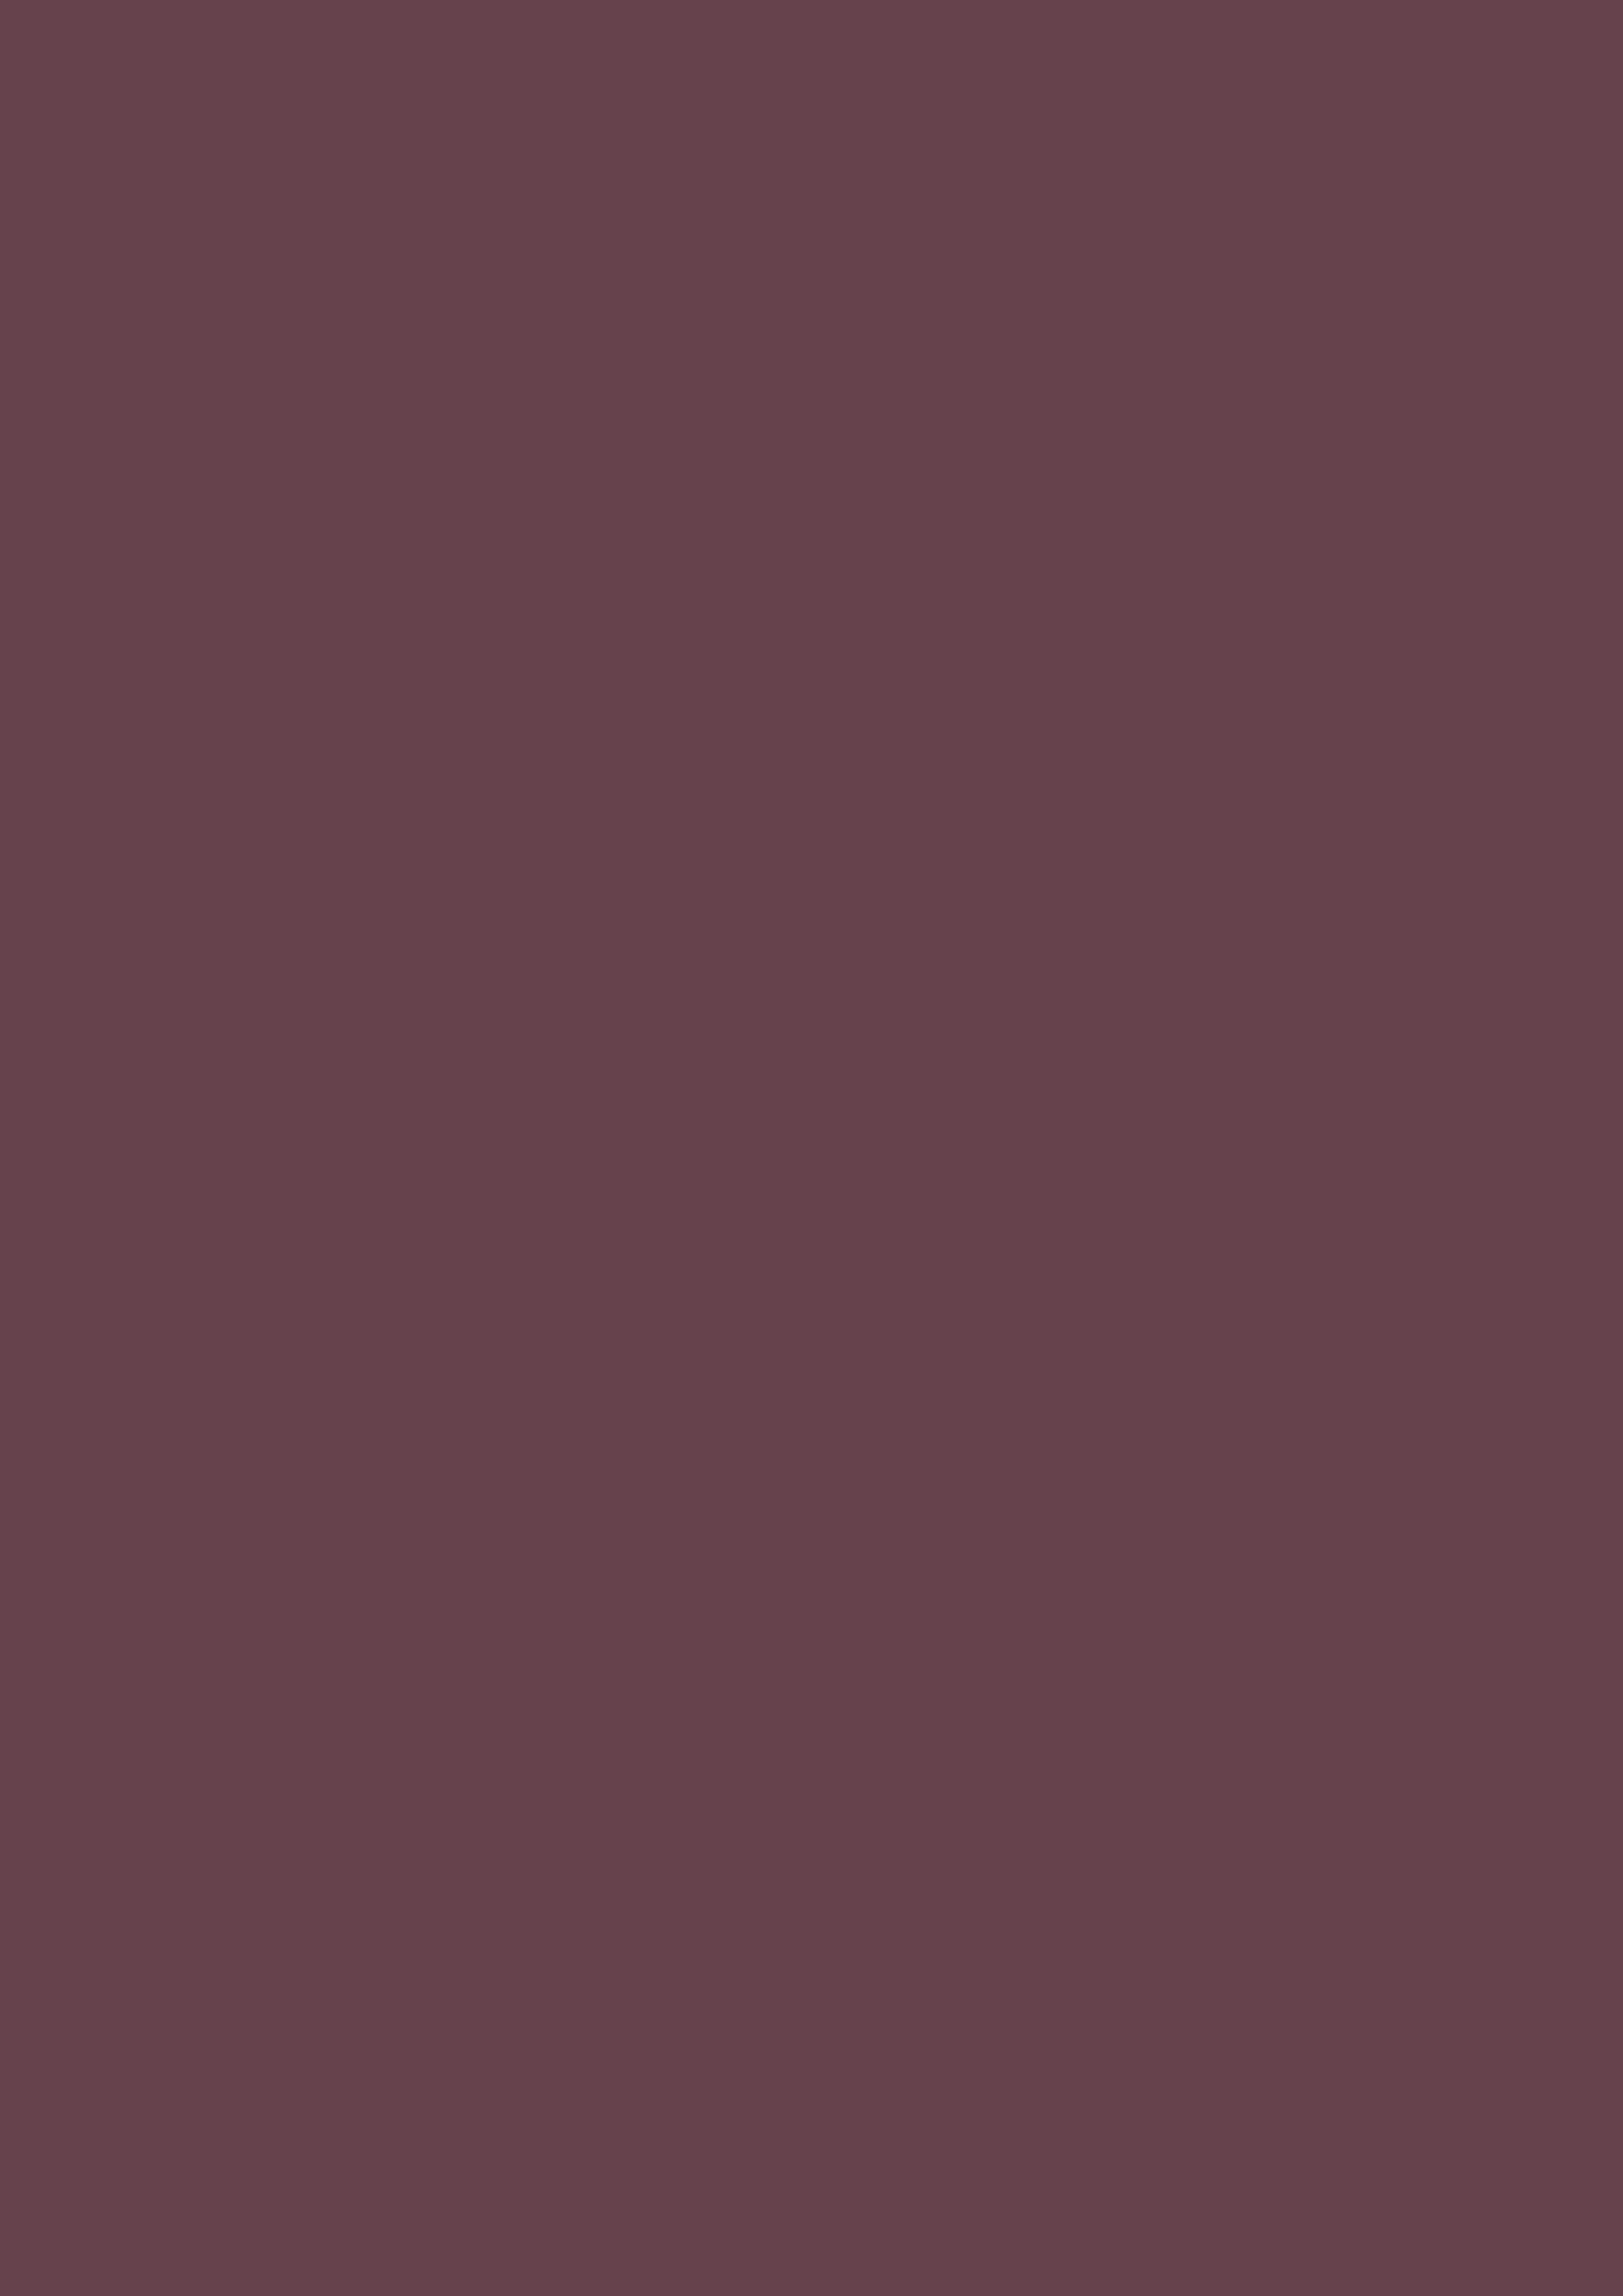 2480x3508 Deep Tuscan Red Solid Color Background